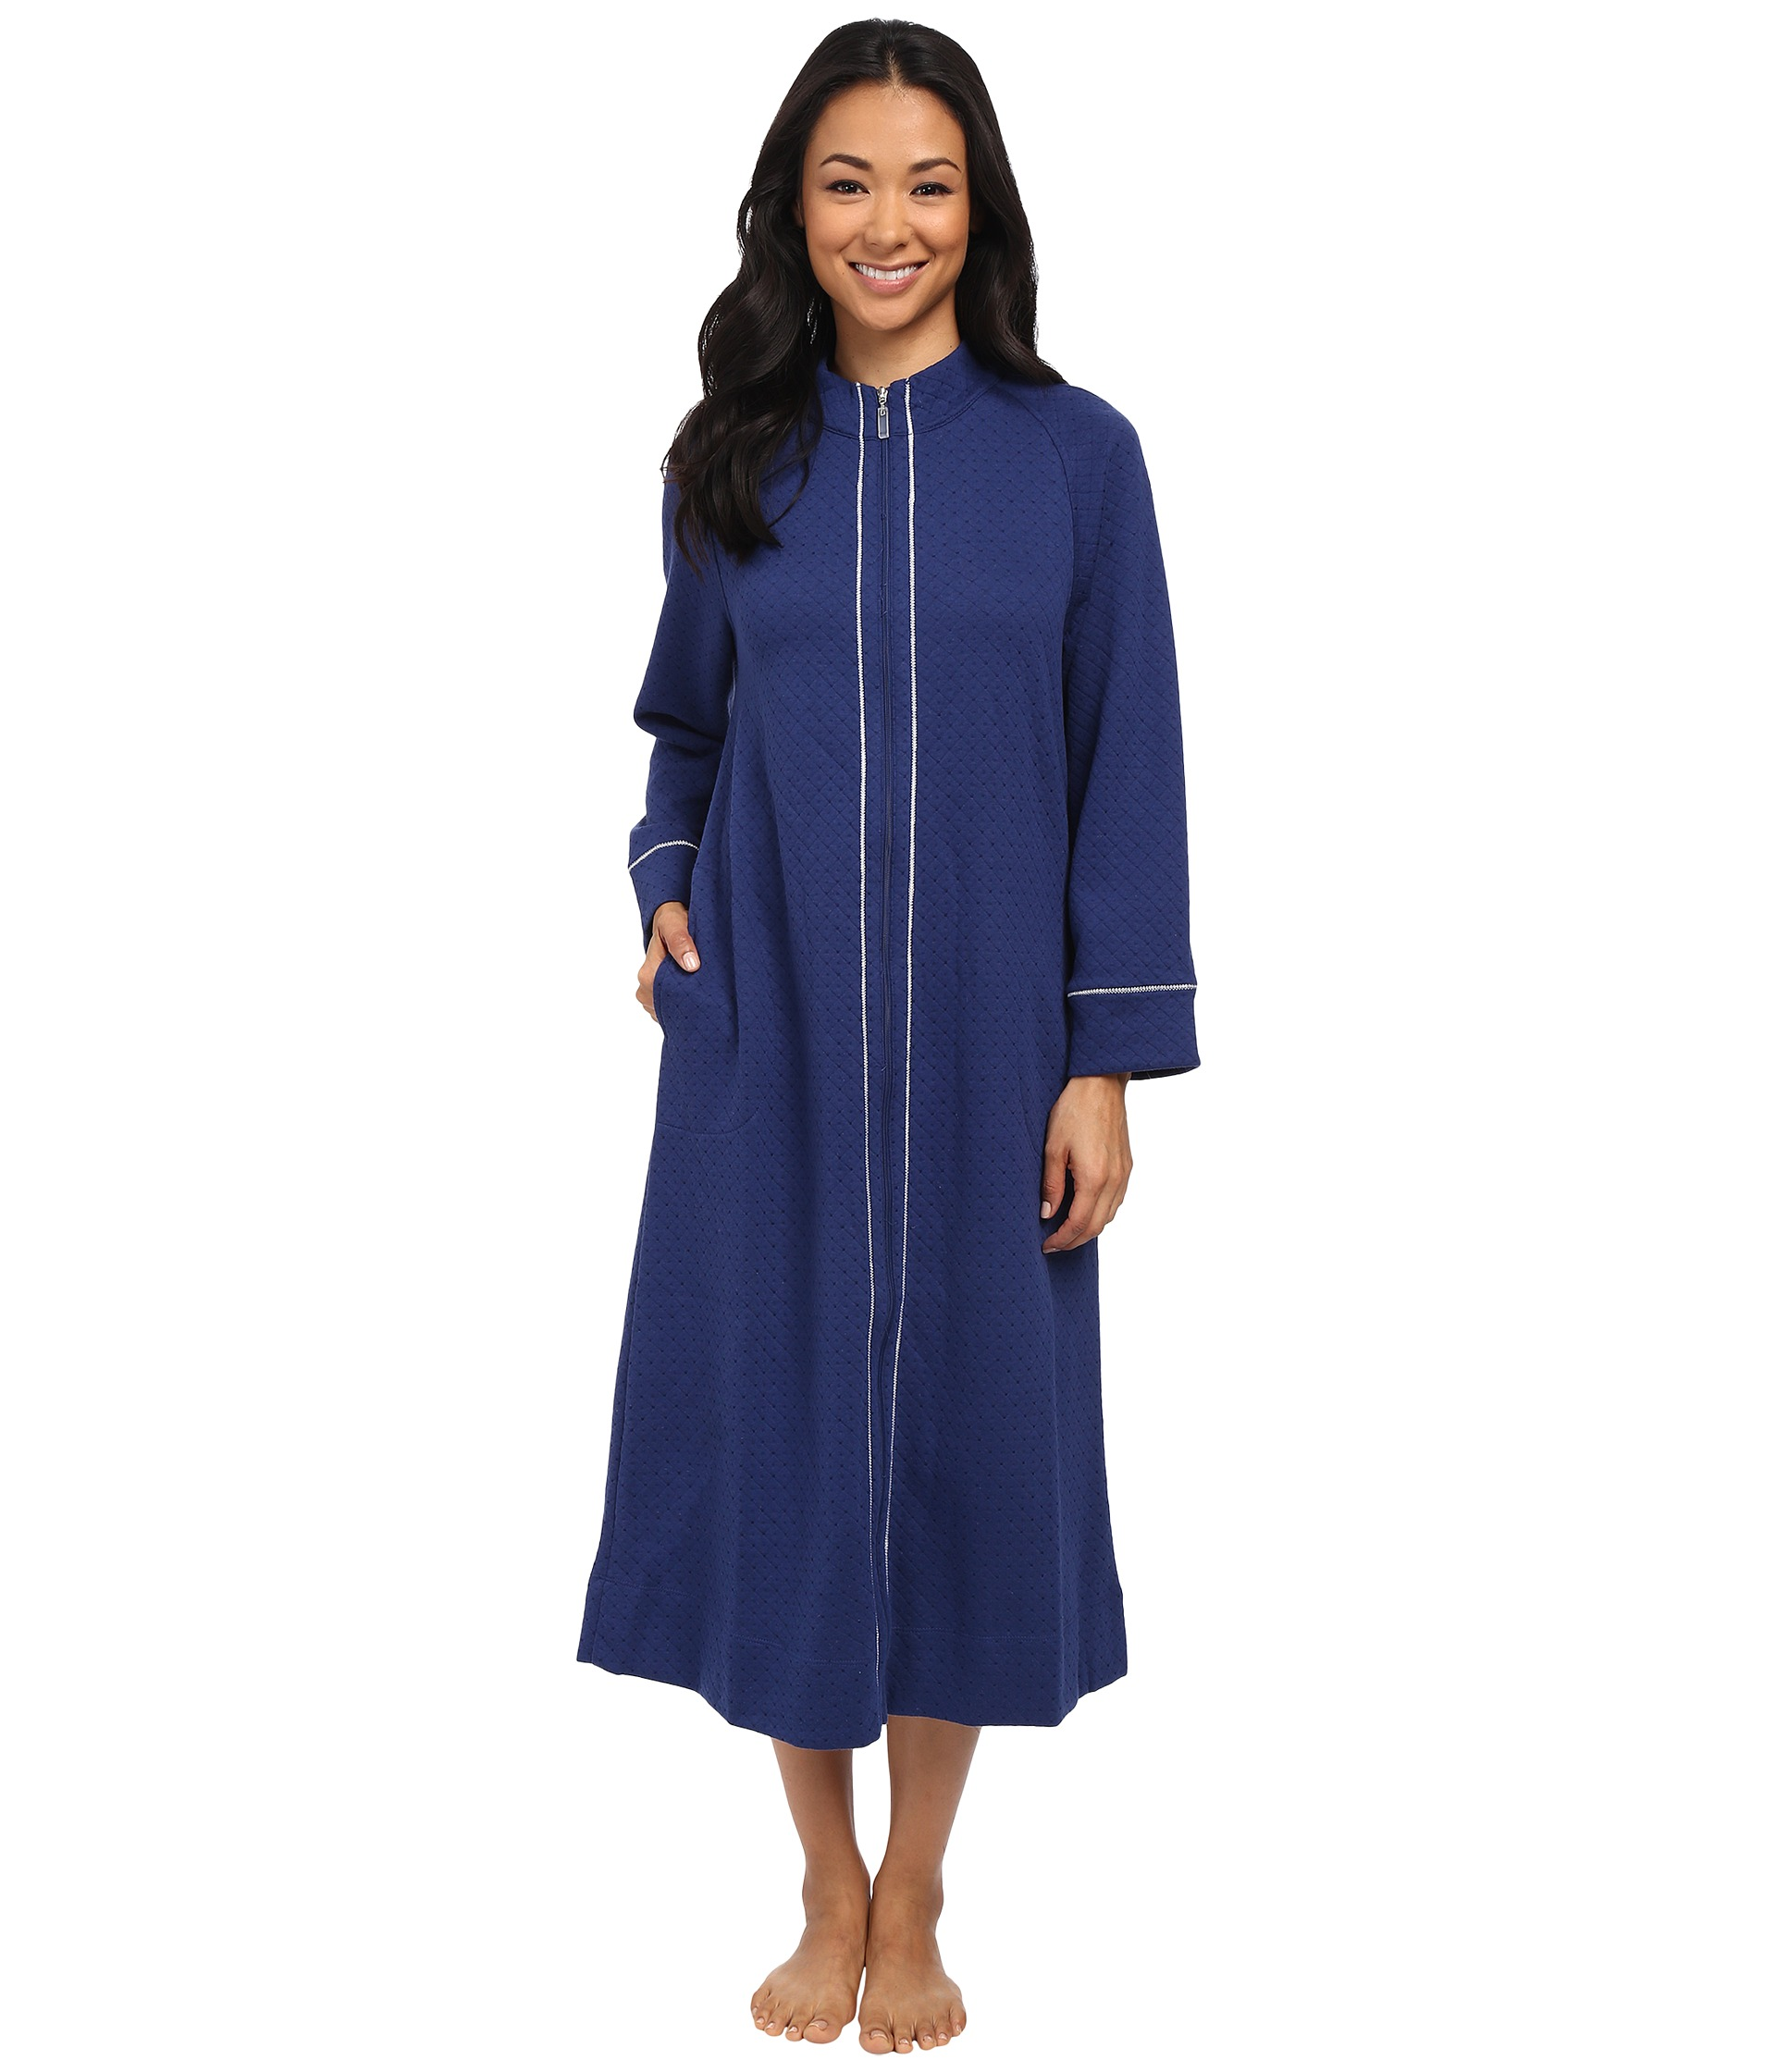 Free shipping on women's robes at 0549sahibi.tk Shop by length, style, color from Barefoot Dreams, Natori, UGG, Lauren Ralph Lauren & more from the best brands. Free shipping and returns.